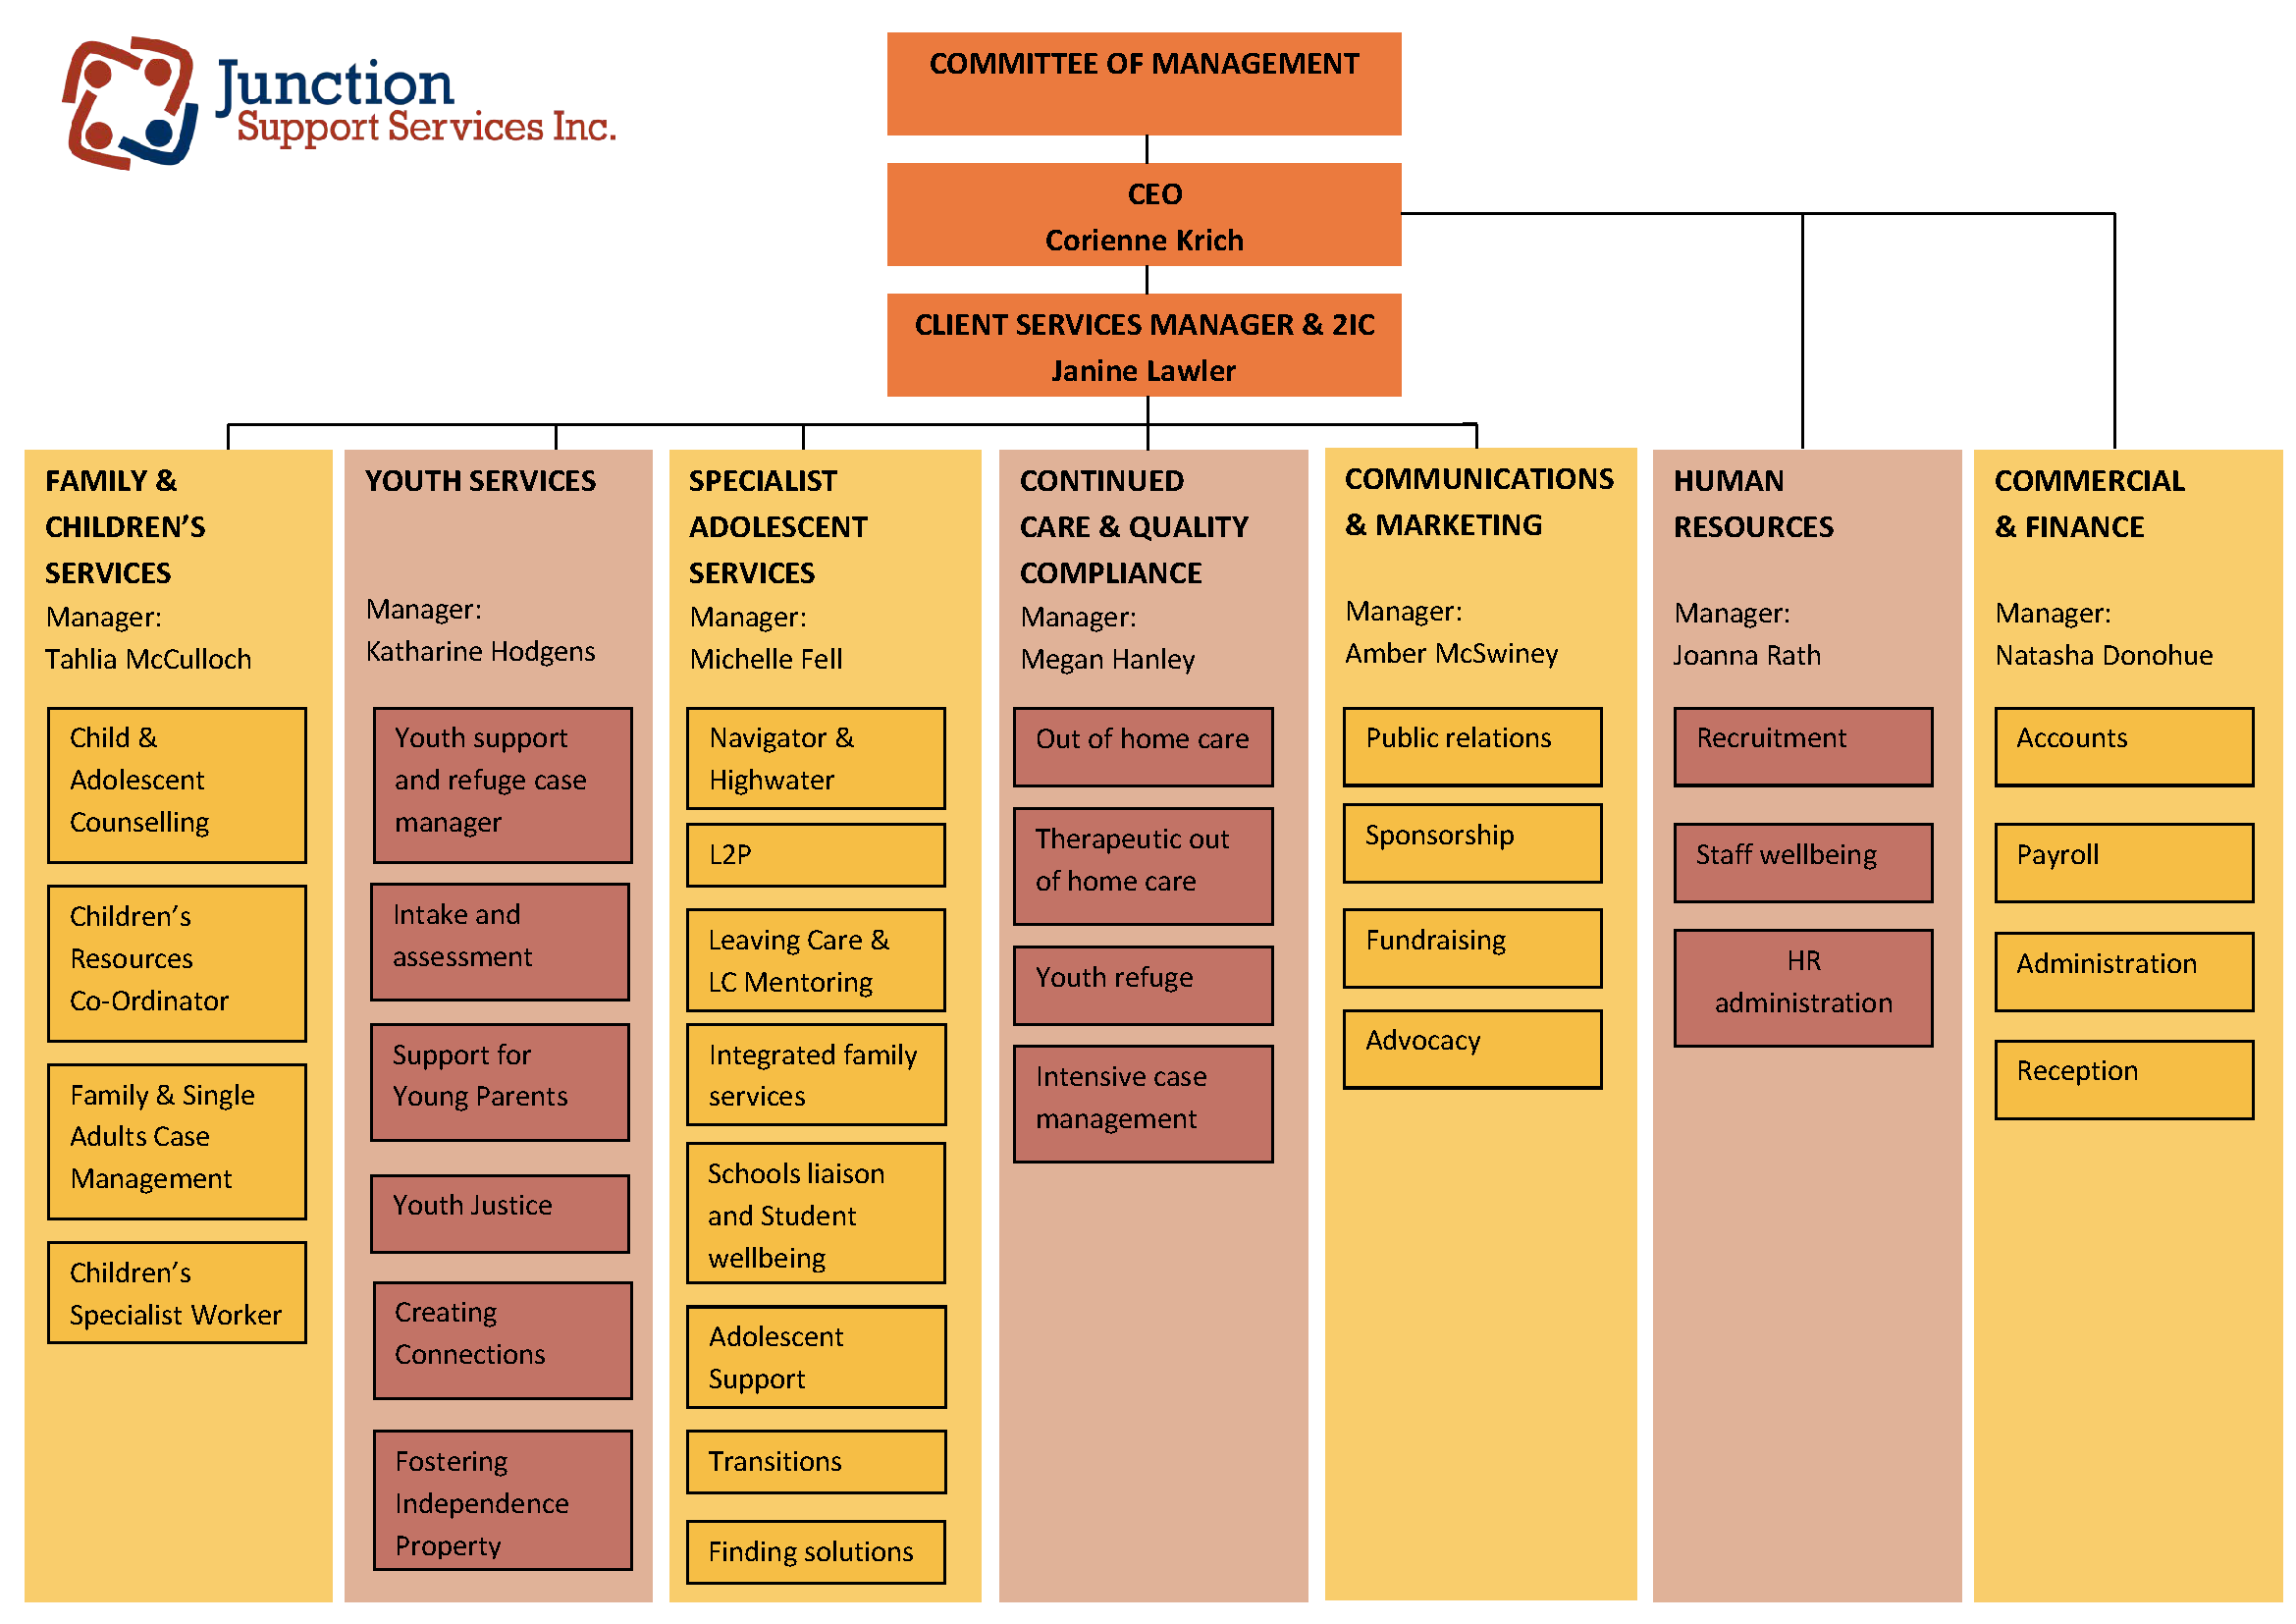 Junction Support Services organisational chart